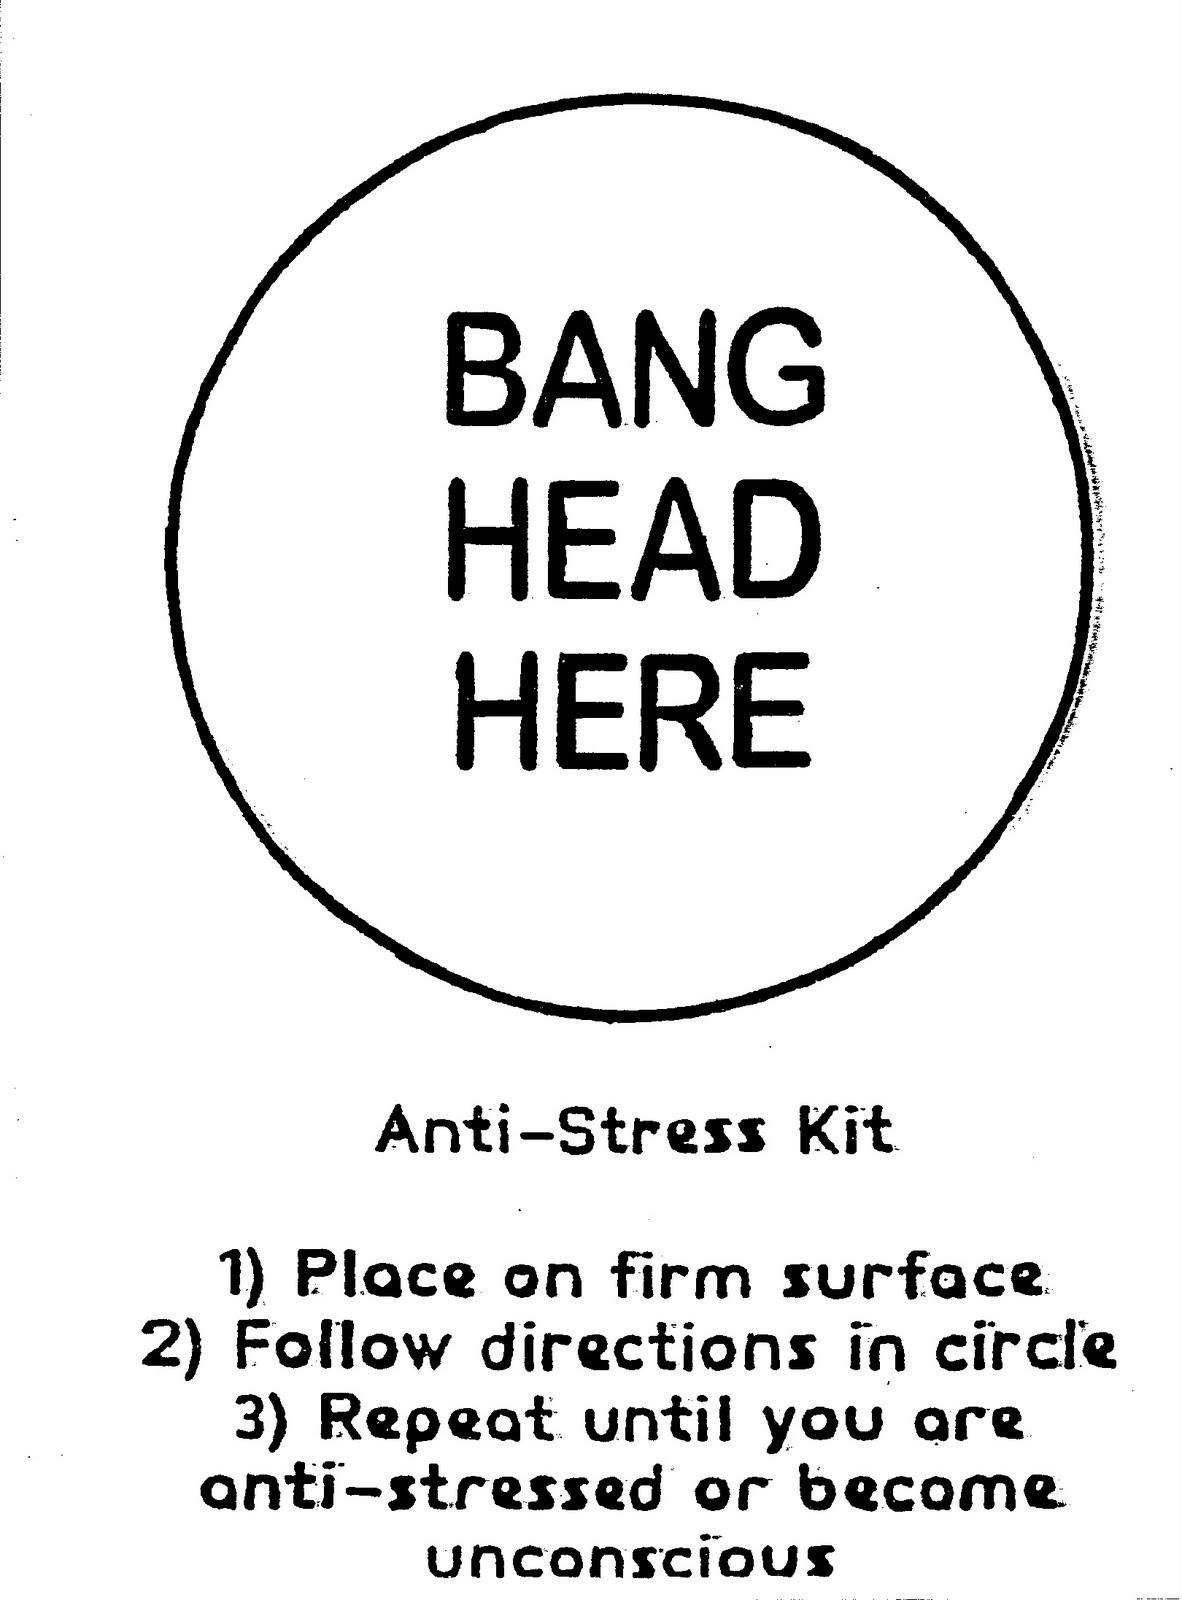 Stress Treatment Kit